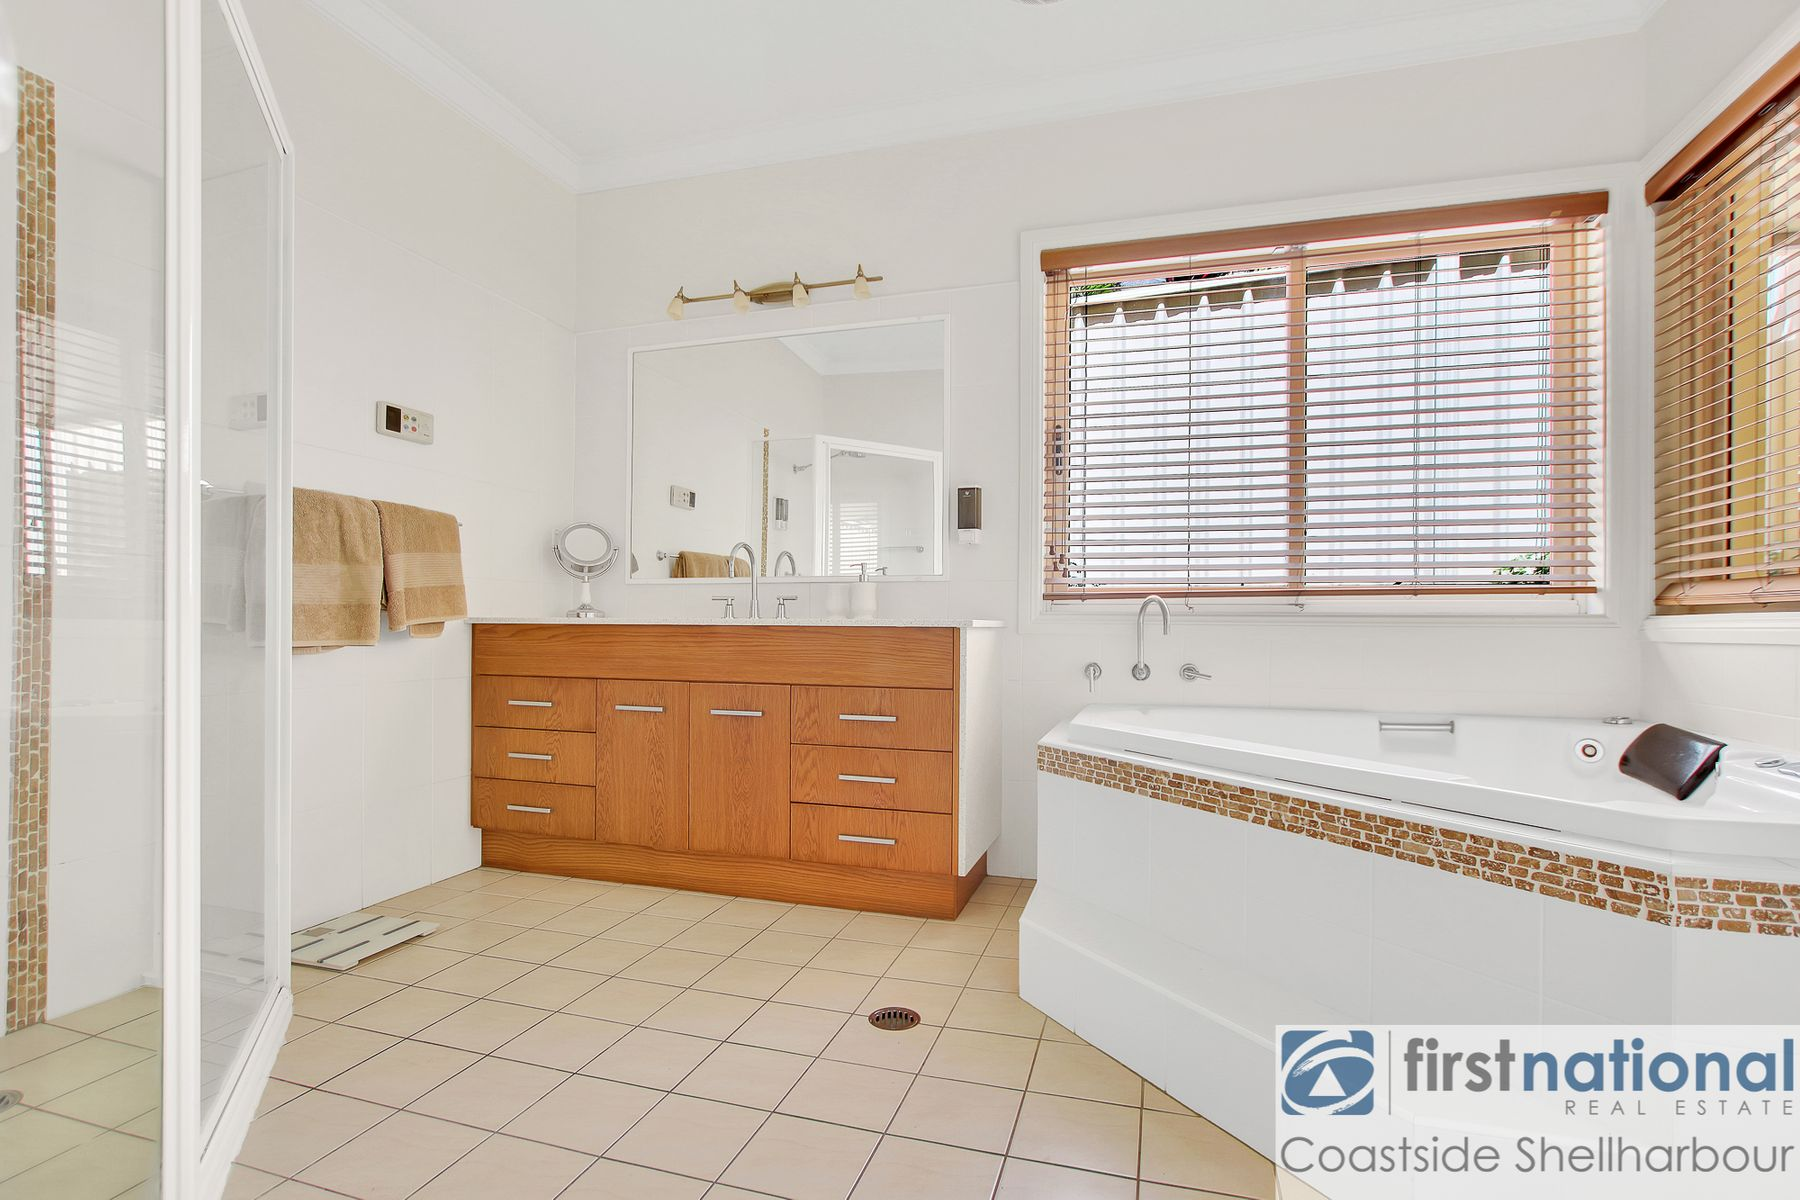 4 Southern Cross Boulevard, Shell Cove, NSW 2529